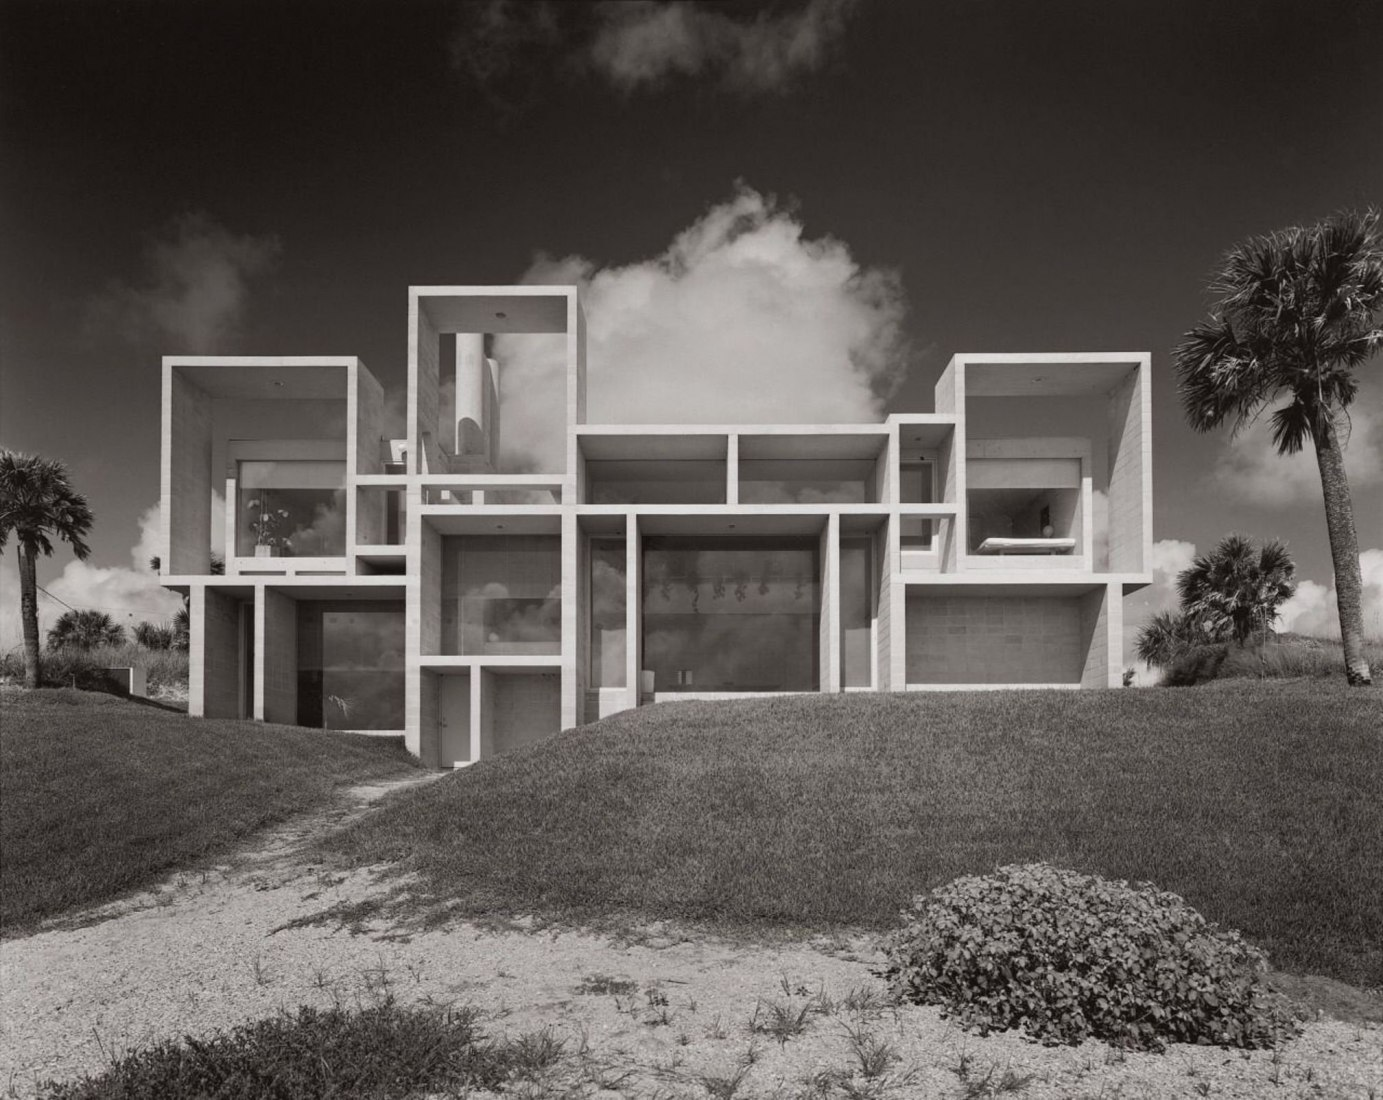 Bill Maris, Paul Rudolph, Milam Residence, Ponte Vedra Beach, Florida, 1962. Photograph by Bill Maris, courtesy of Collection SFMOMA